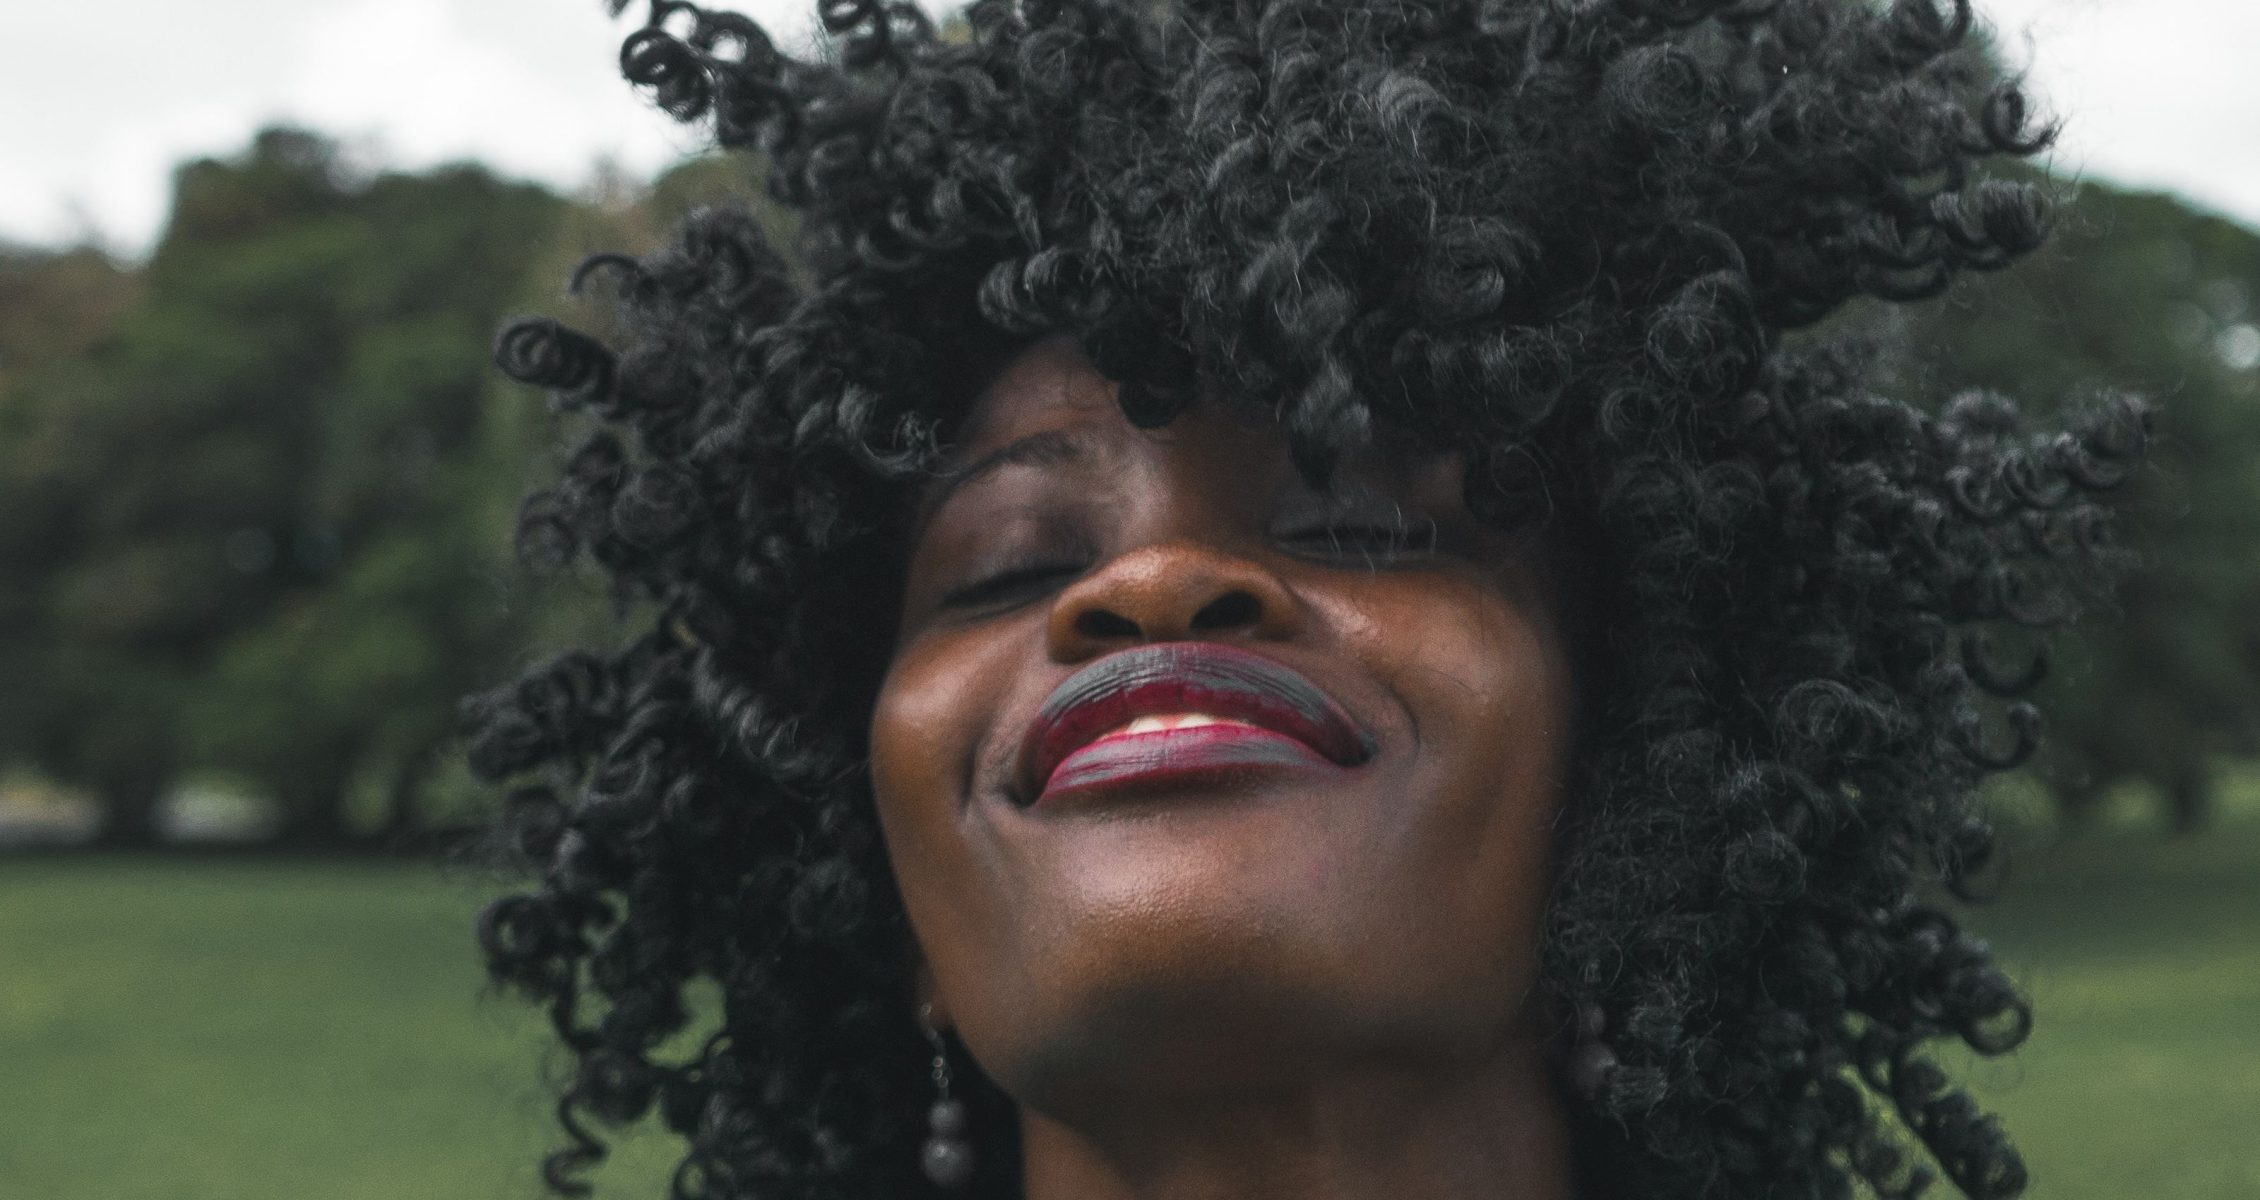 Woman with very dark, curly hair smiling up with her eyes closed